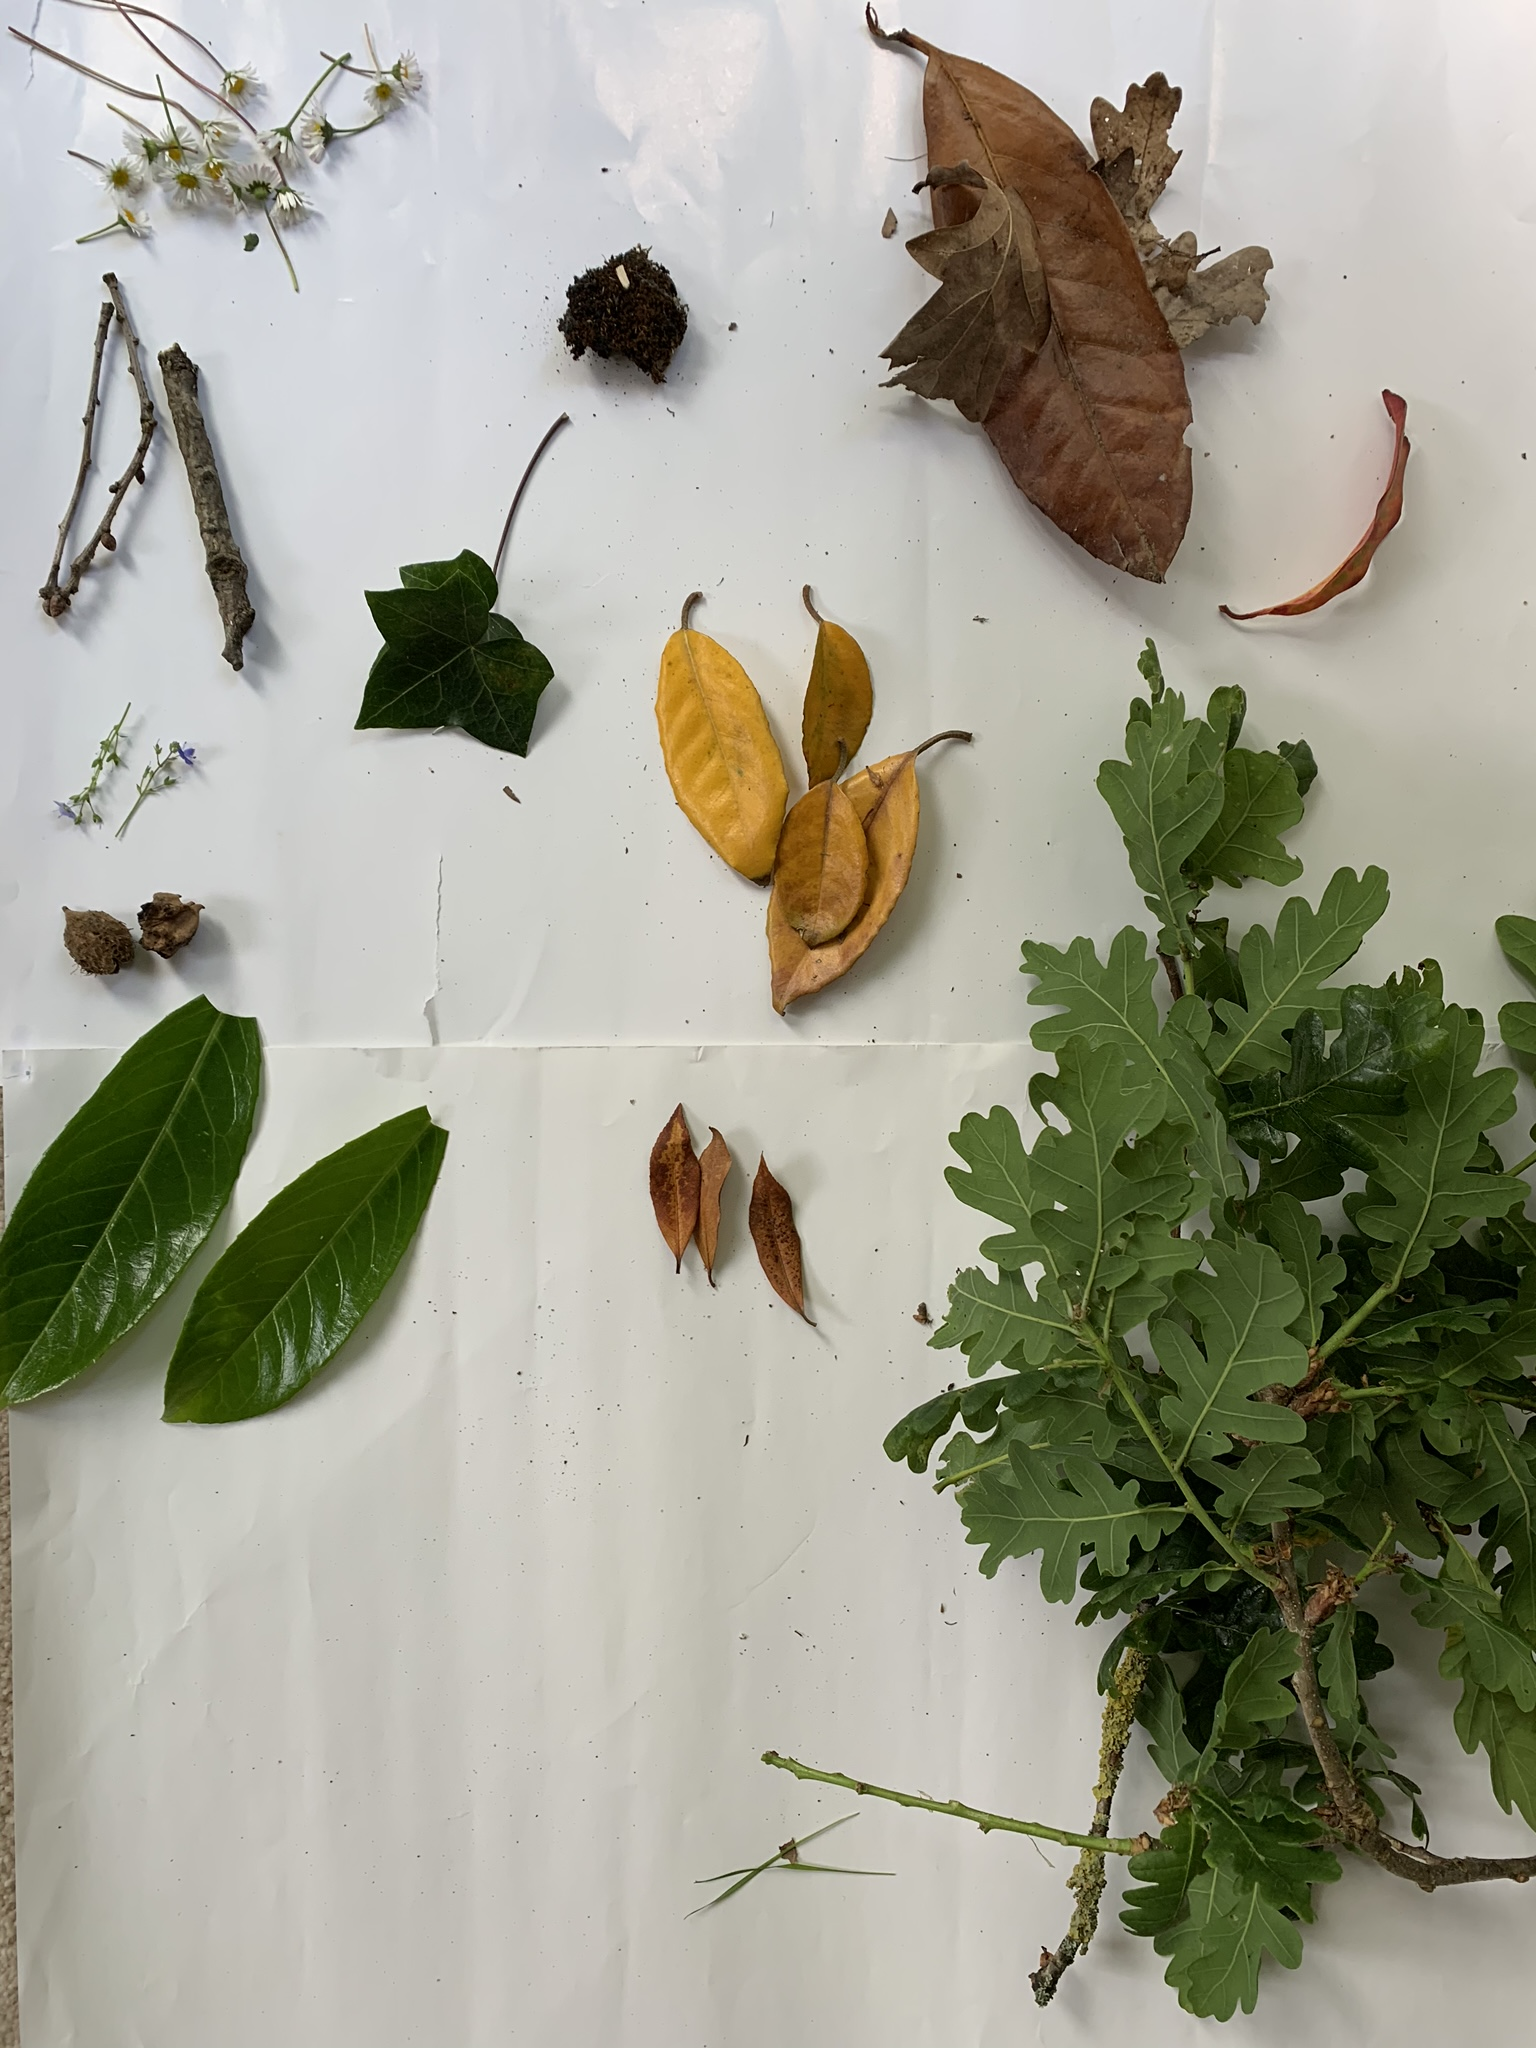 Making nature creatures, leaves collected from the garden for art